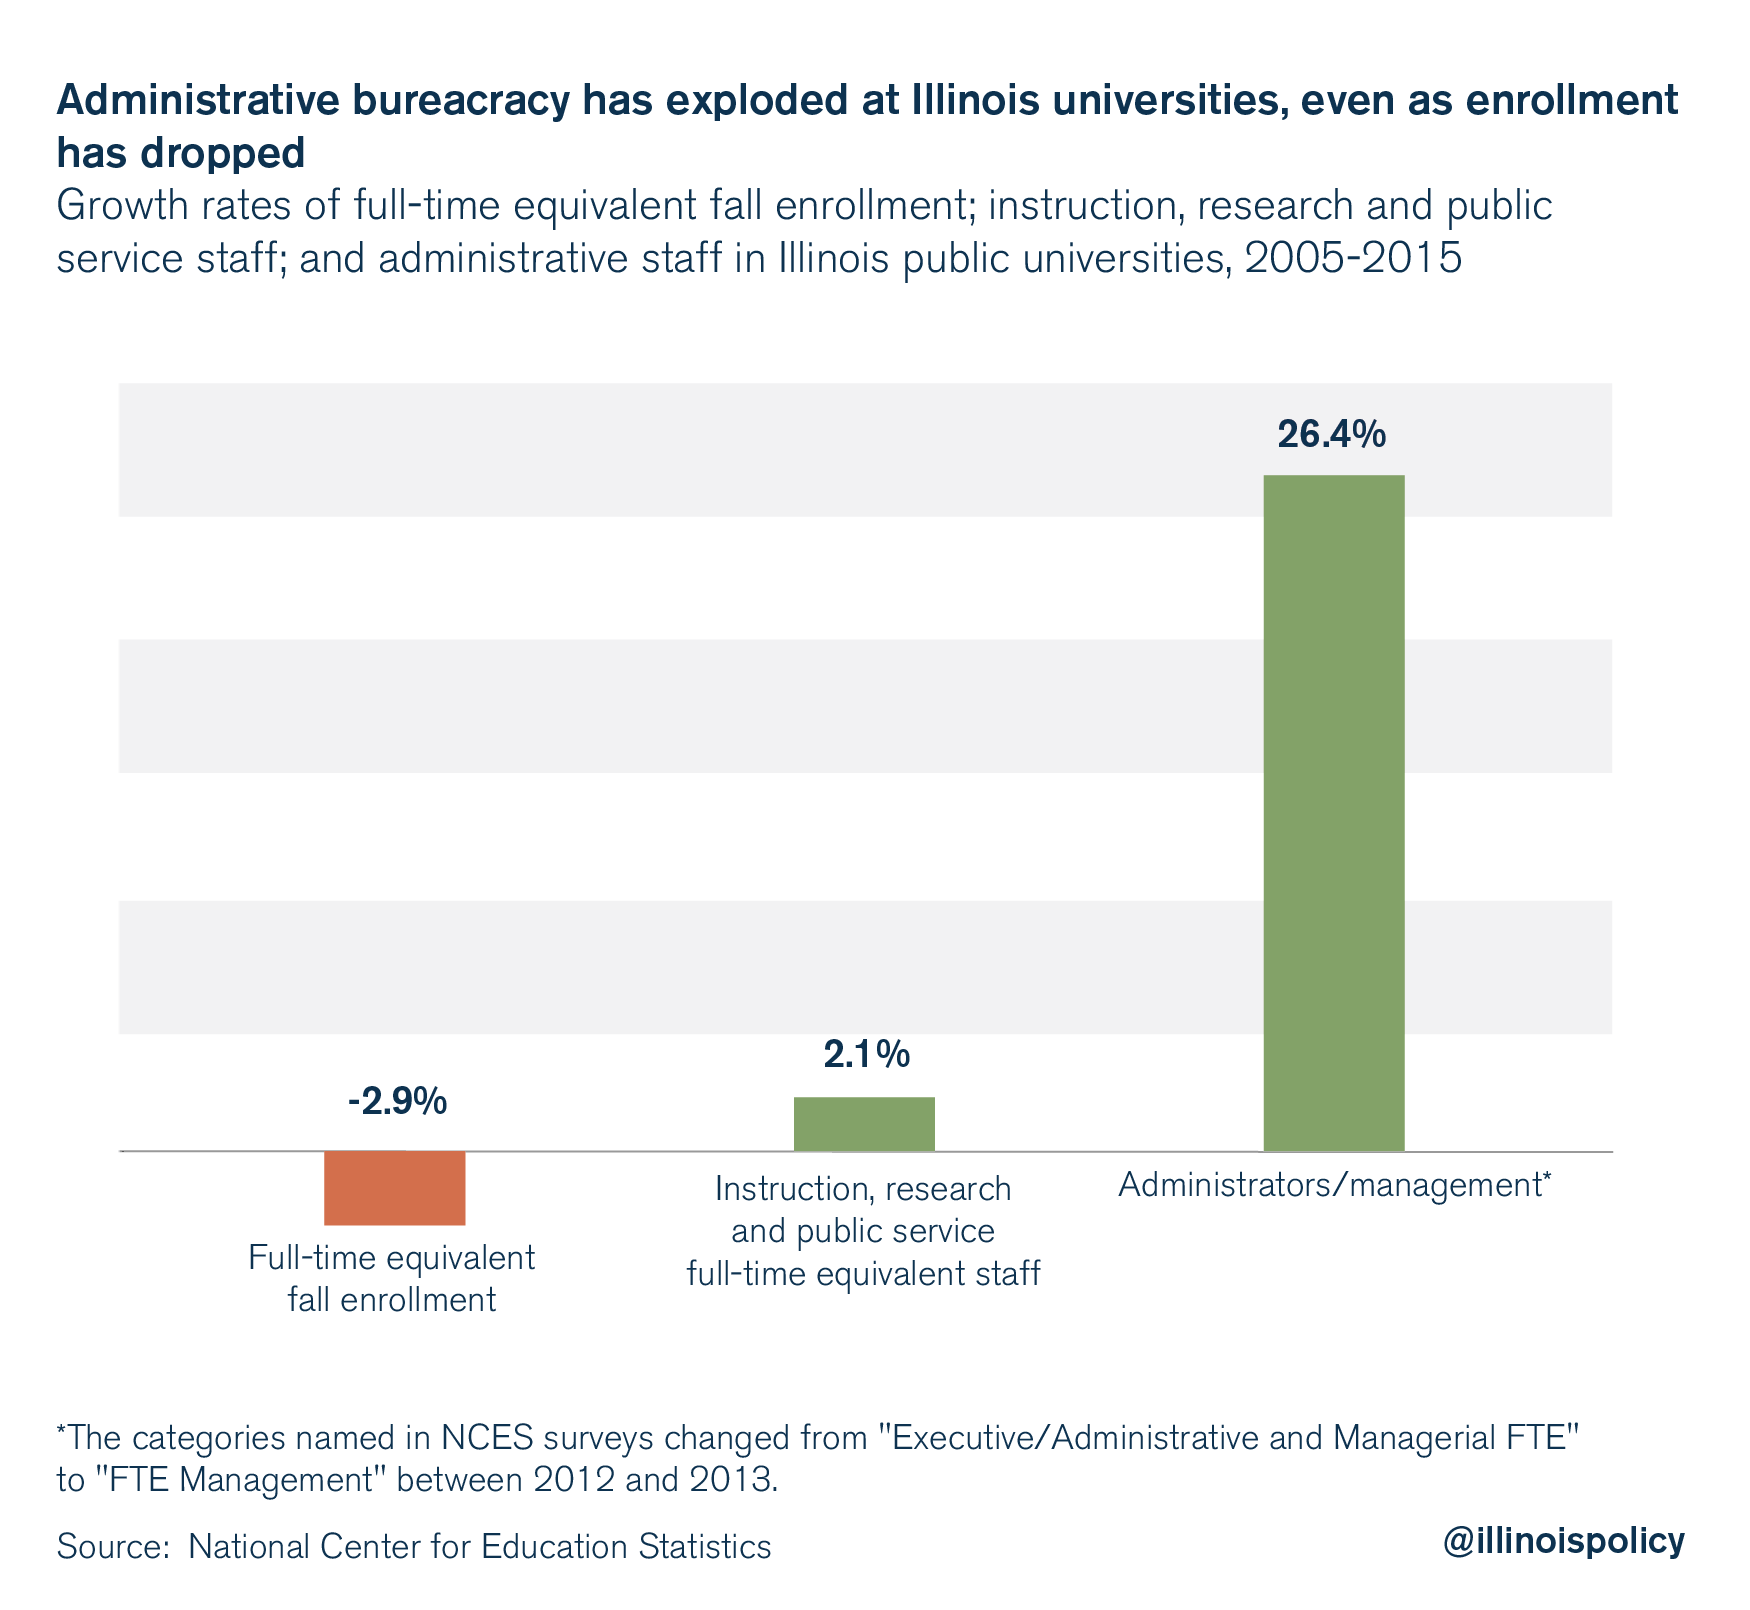 Administrative bureaucracy has exploded at Illinois universities, even as enrollment as dropped